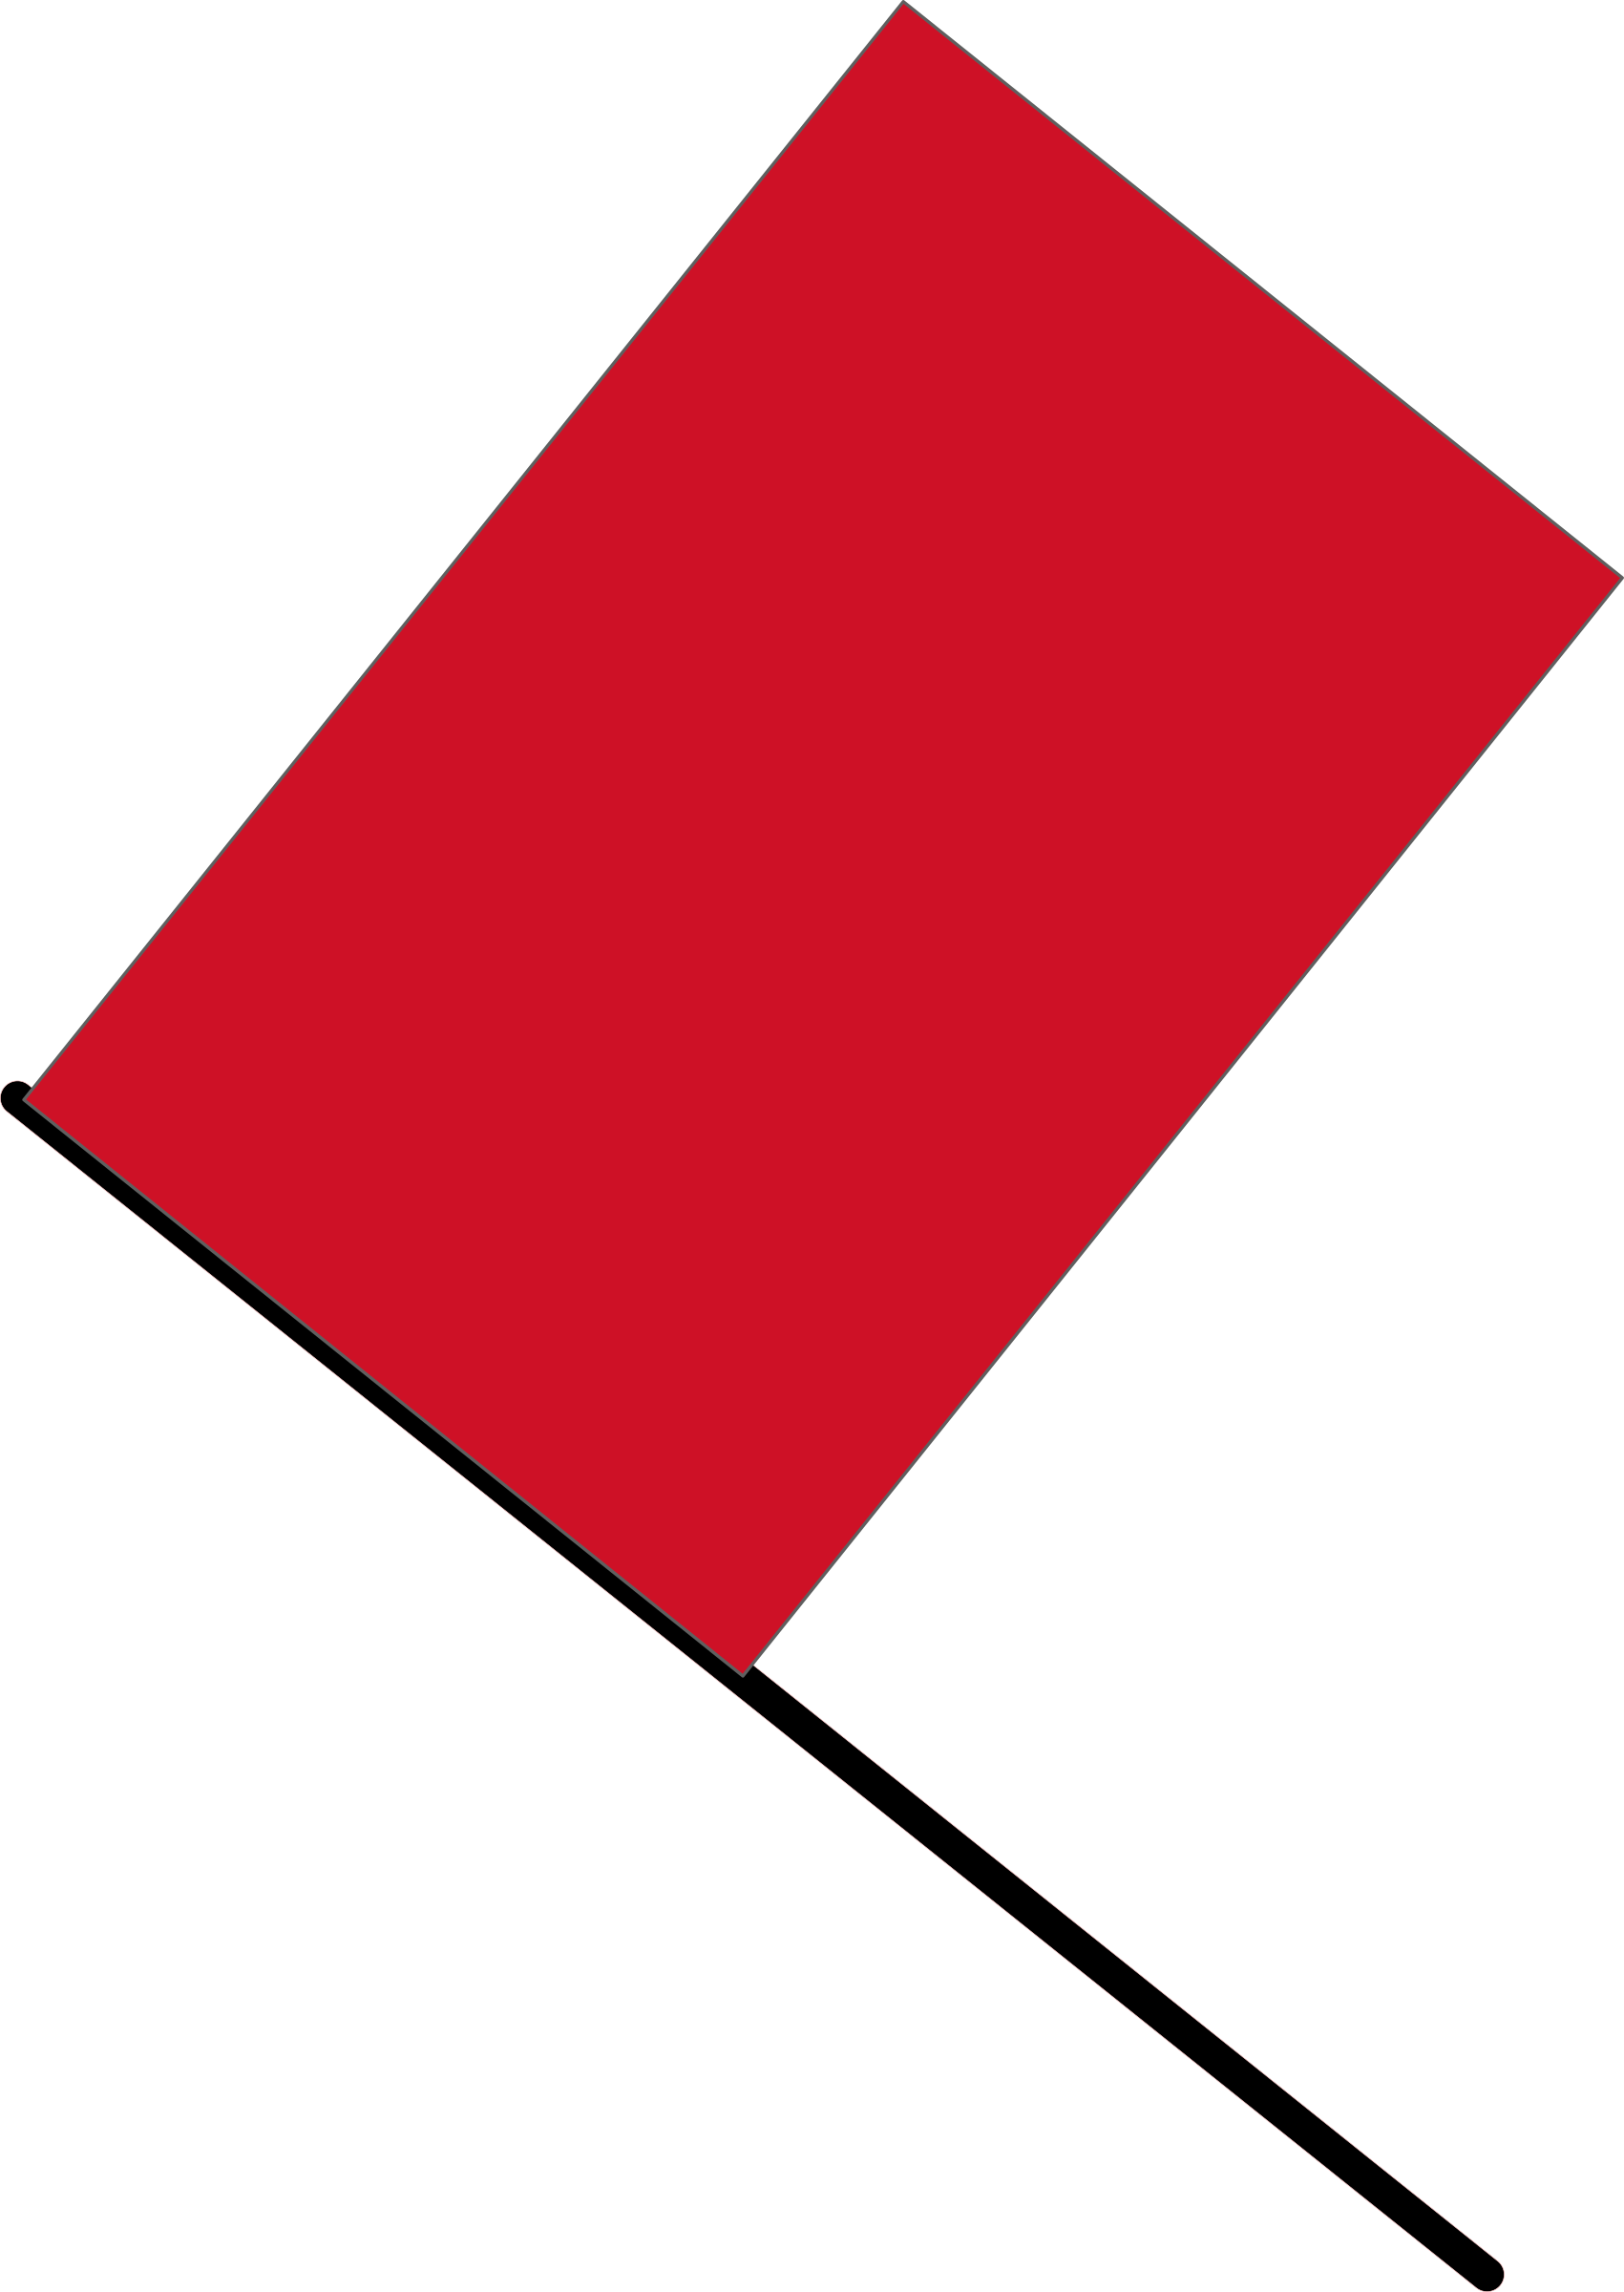 Red big image png. Clipart cars flag